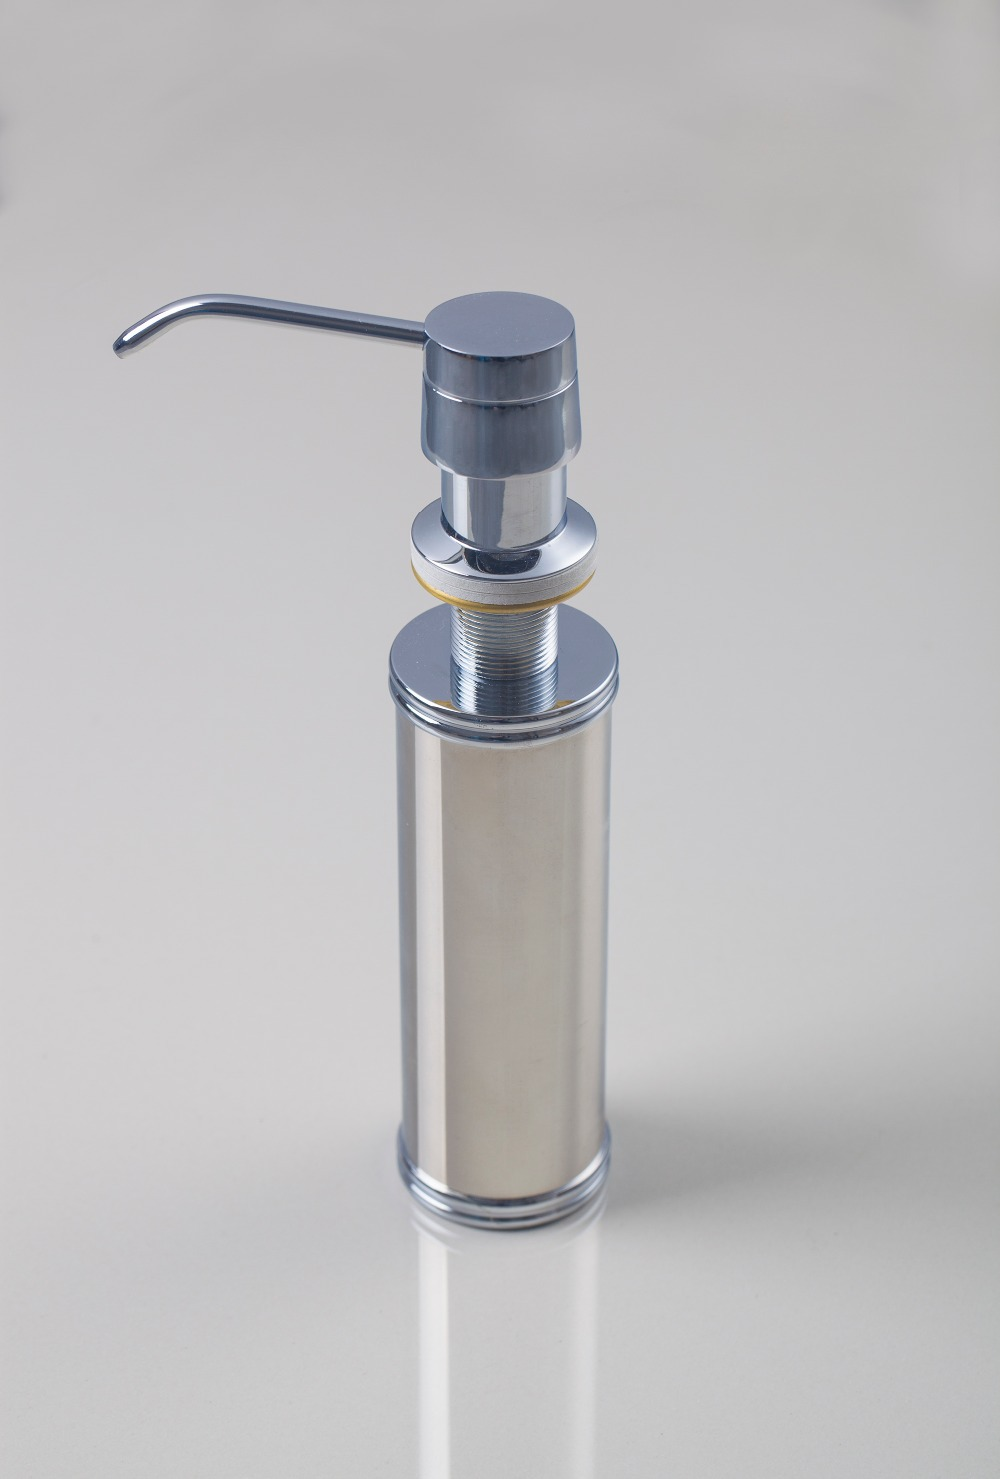 E pak hello bathroom kitchen liquid soap dispensers stainless steel kitchen sink replacement - Kitchen sink soap pump ...